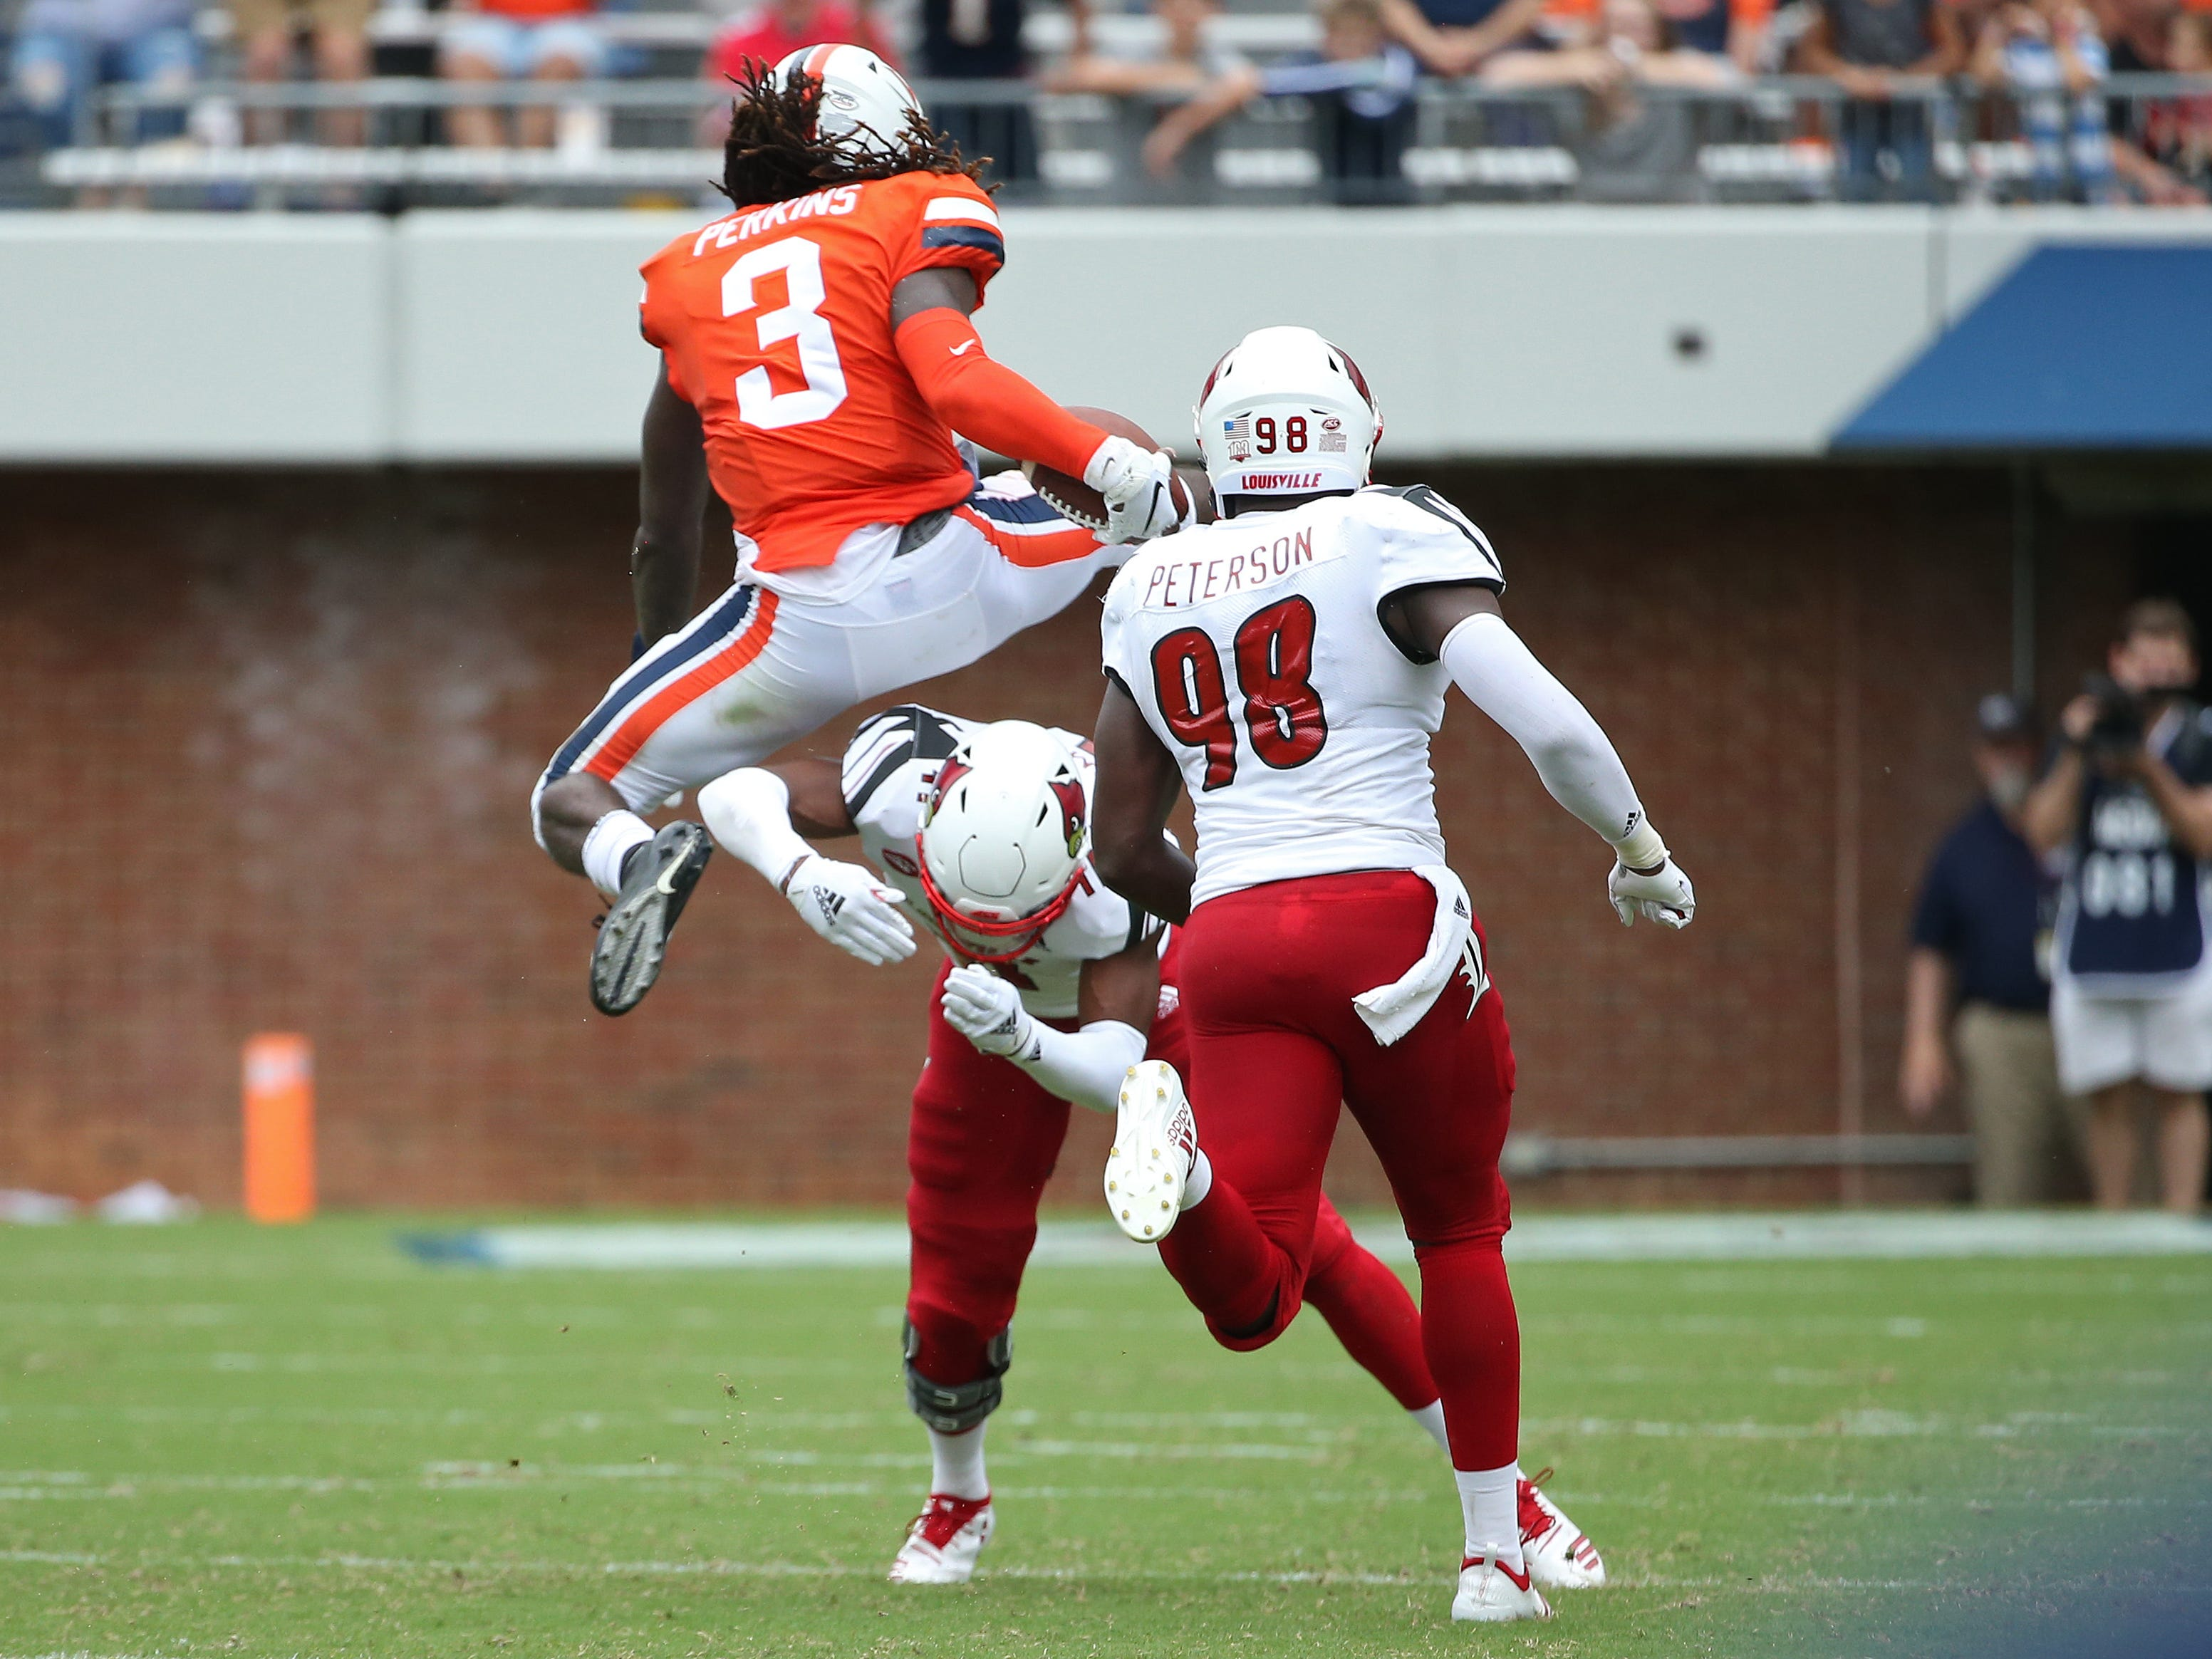 Virginia Cavaliers quarterback Bryce Perkins leaps over Louisville Cardinals safety Dee Smith while running with the ball in the third quarter at Scott Stadium.